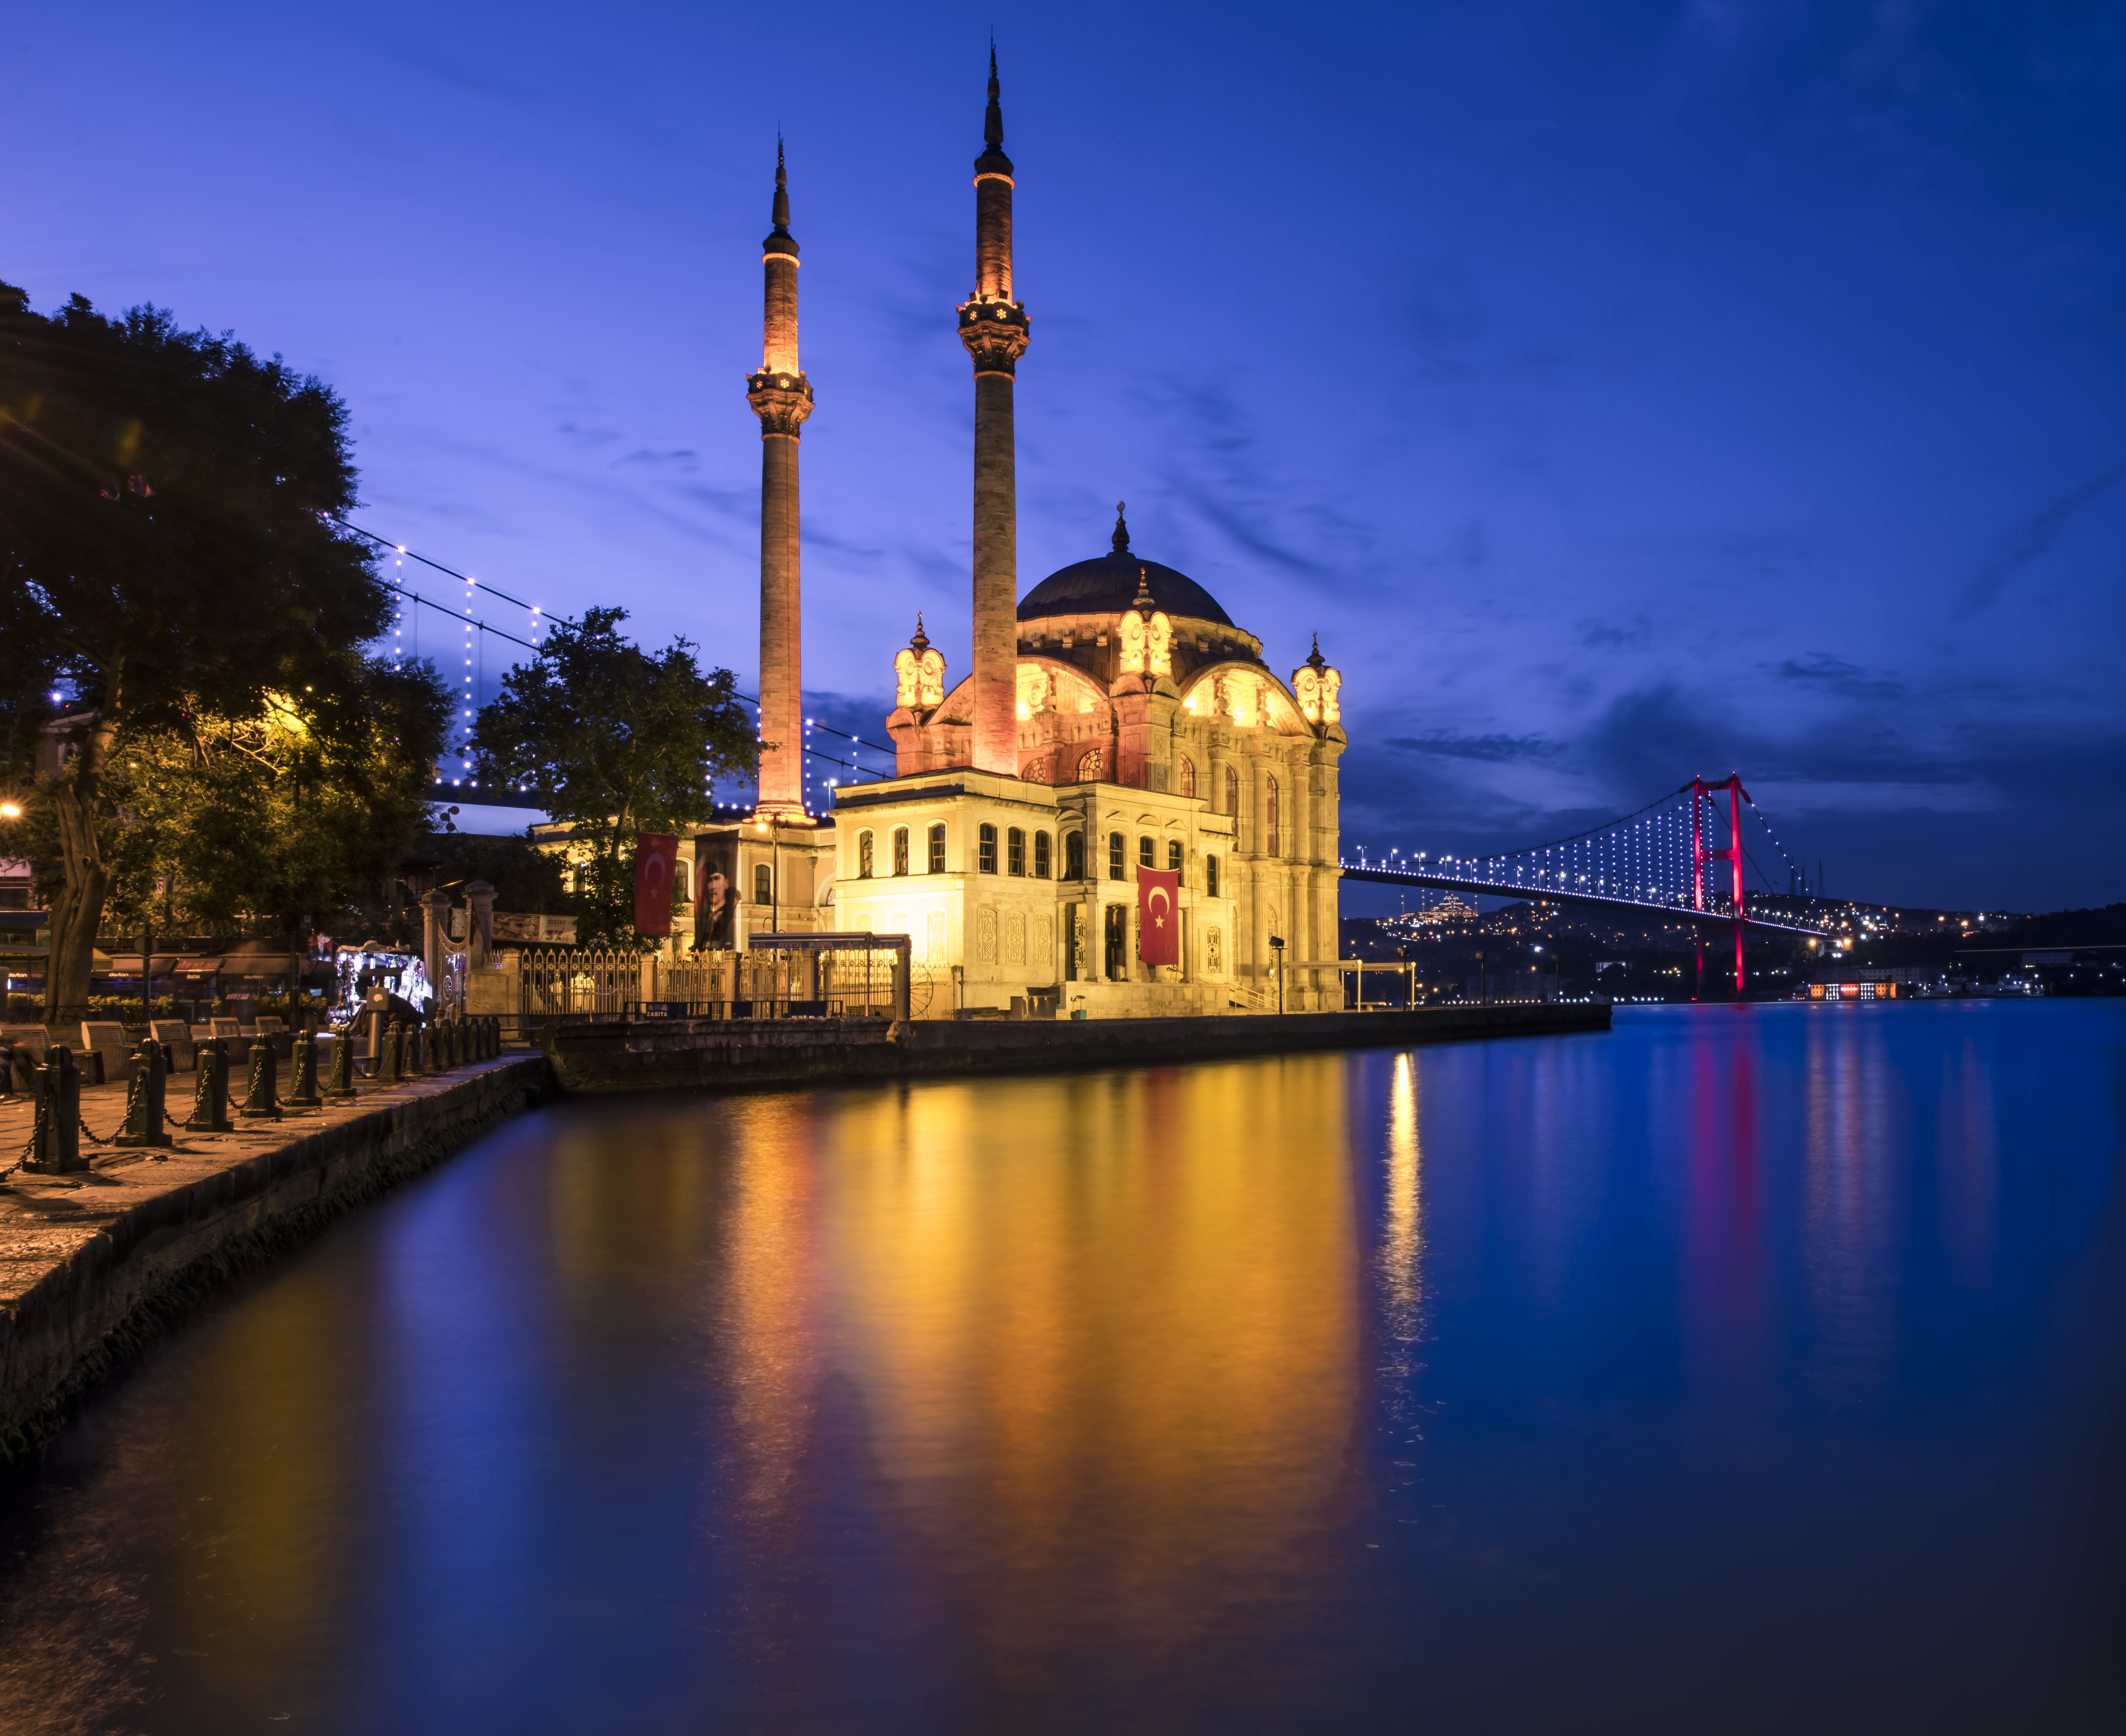 If you reach Ortakoy Mosque around 1 hour before sunrise, the lights on the bridge will still be on.